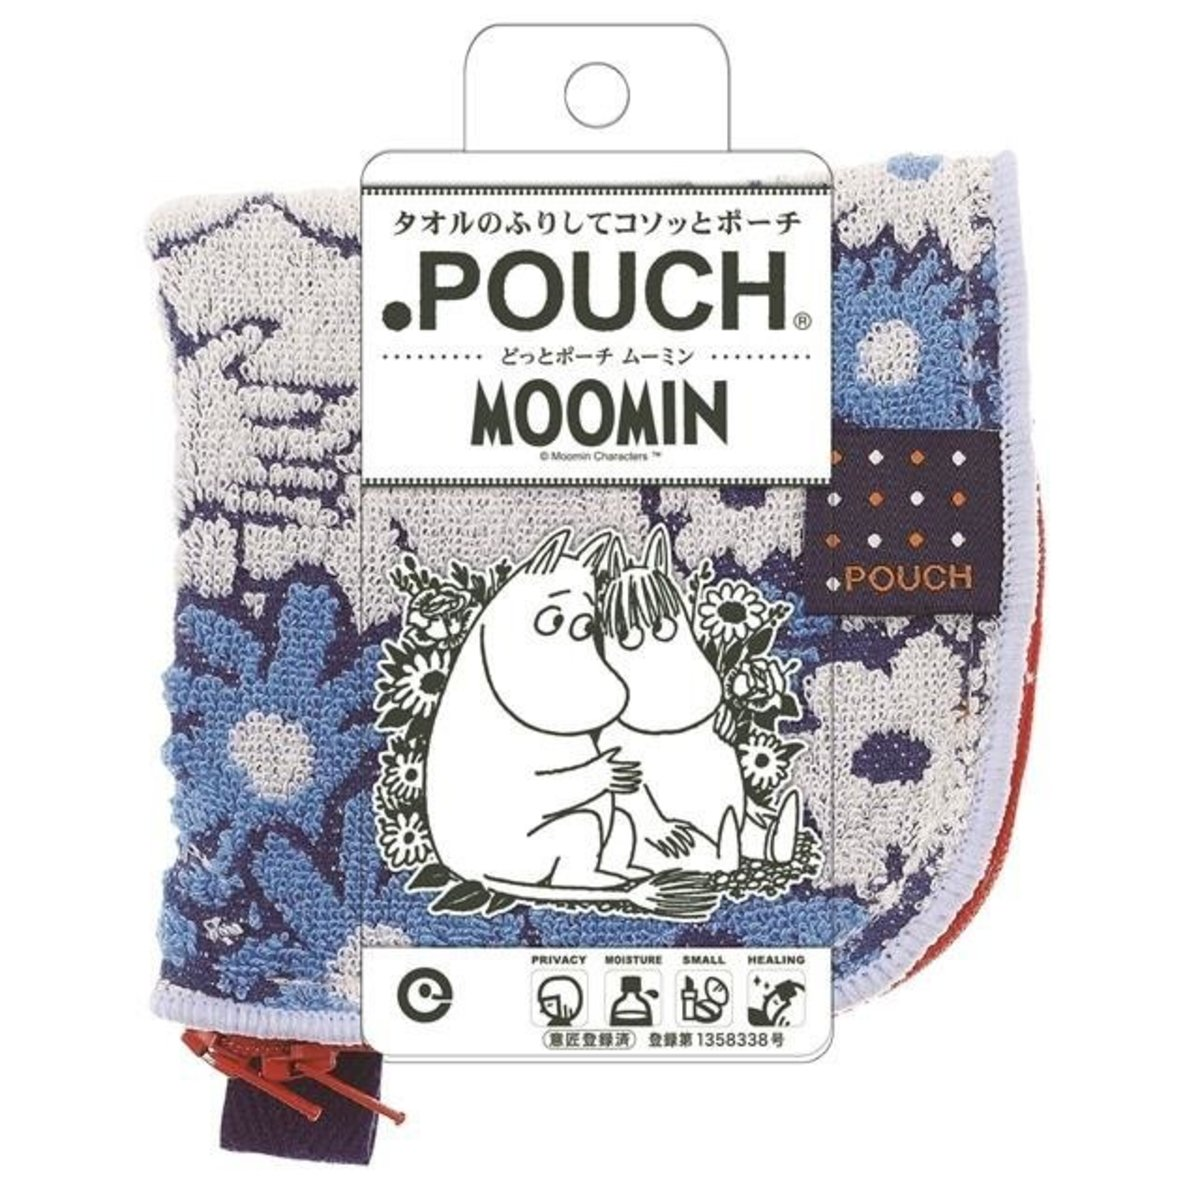 (Moomin) Japan Multi-function Towel Pouch for Umbrella/Water Bottle